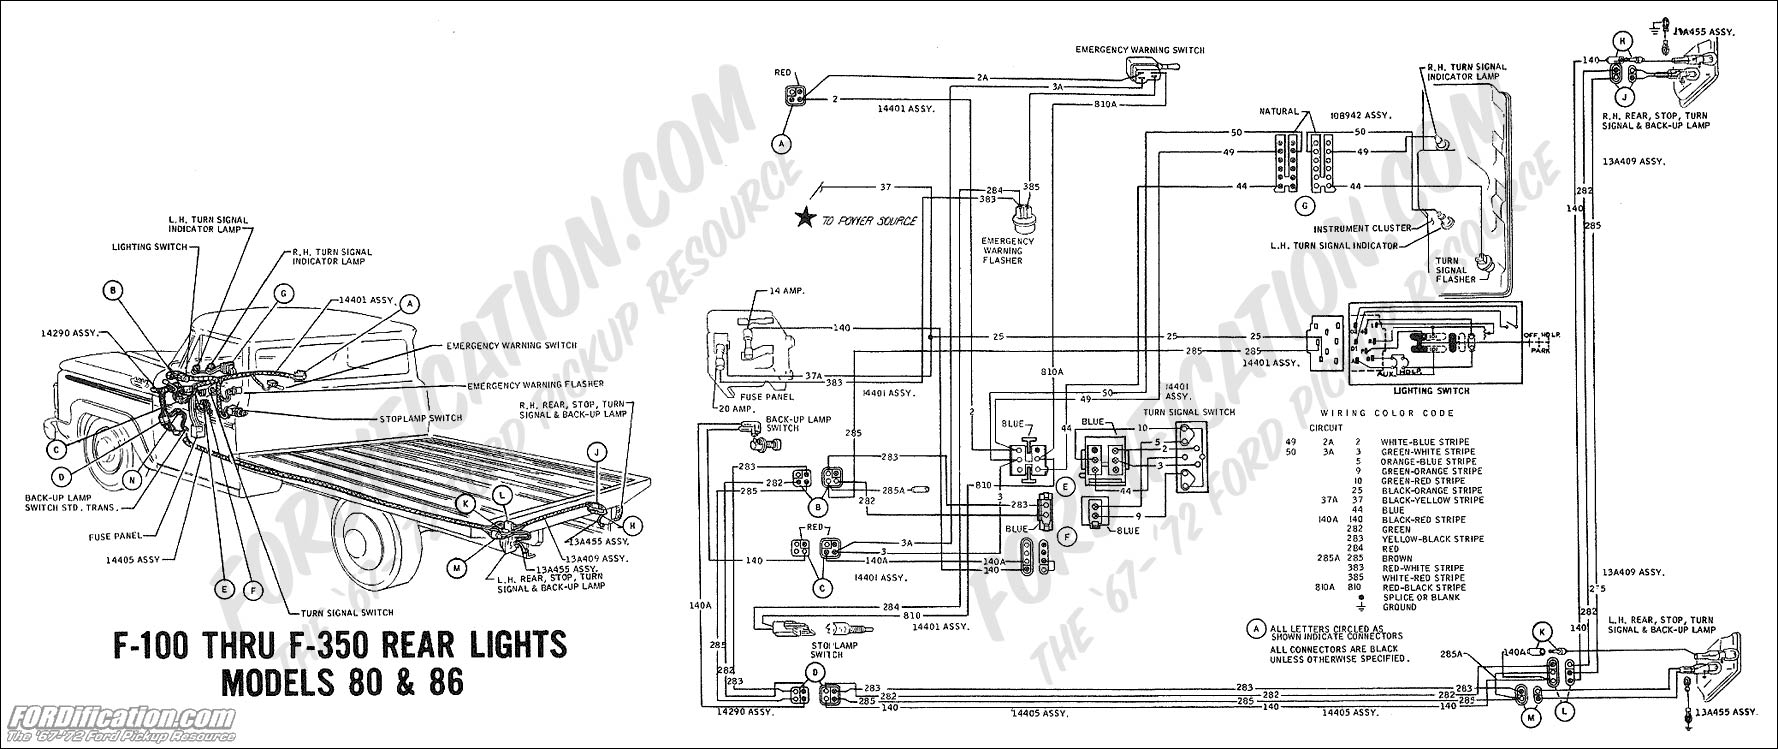 f700 wiring diagram wiring diagram57 ford truck light wiring wiring diagram dataford truck technical drawings and schematics section h wiring